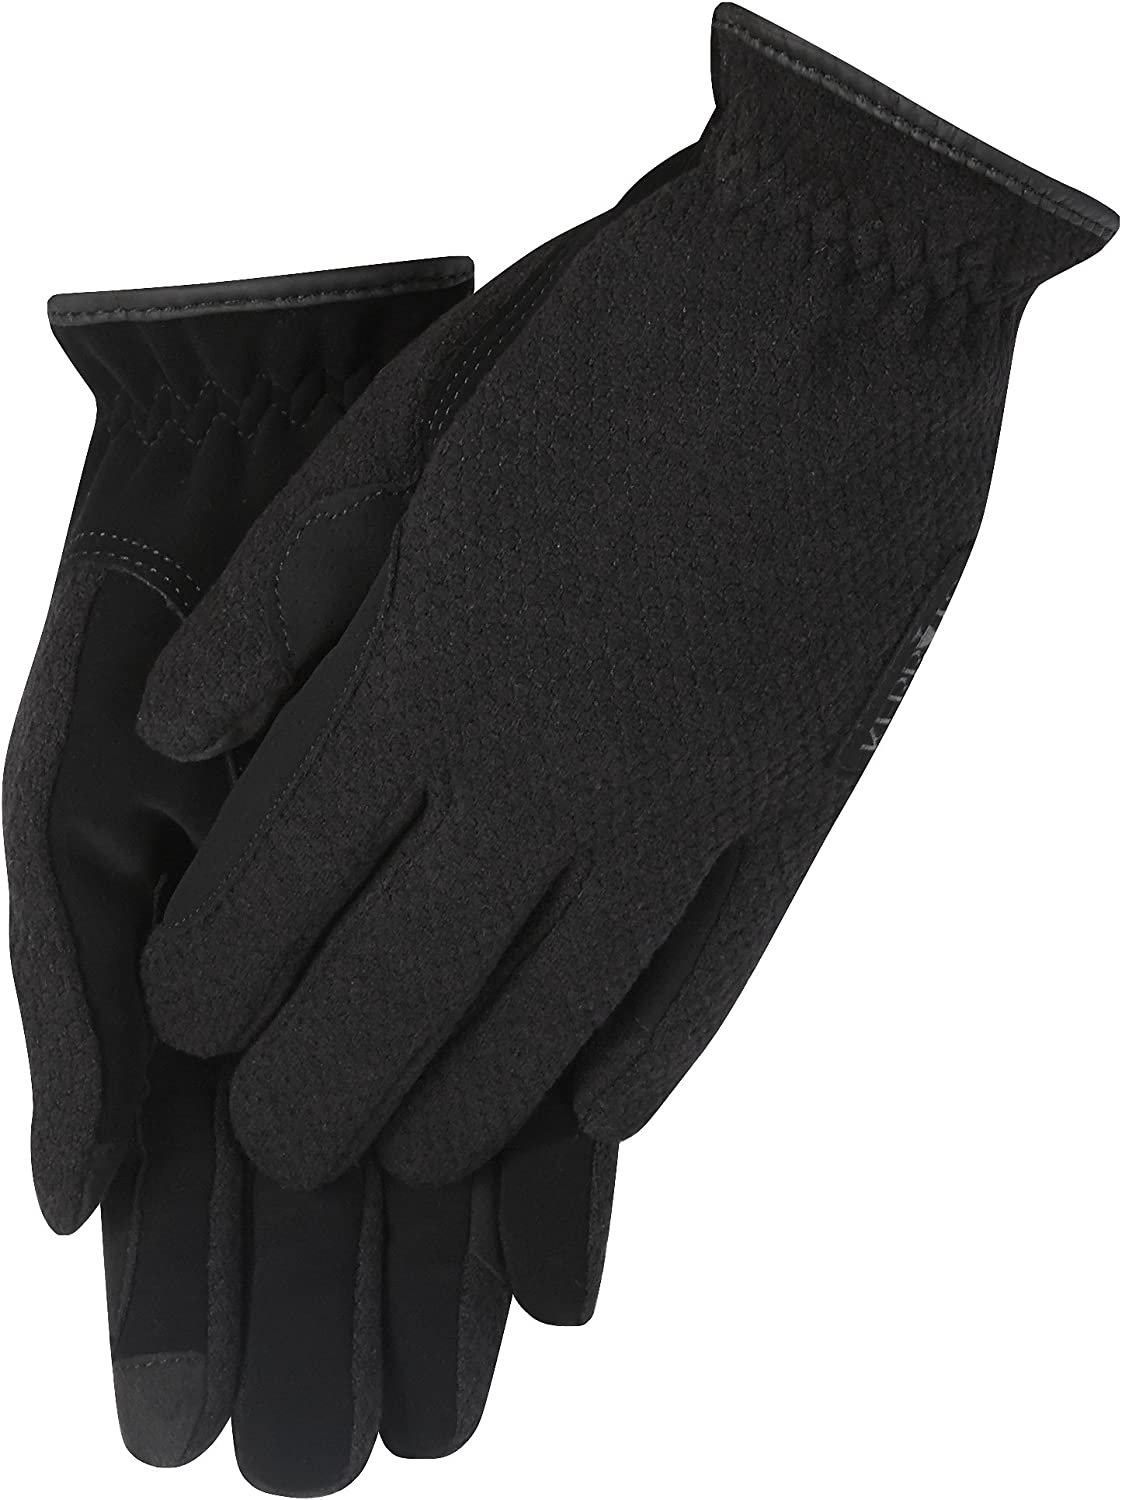 Kerrits Stable Knit Winter Glove